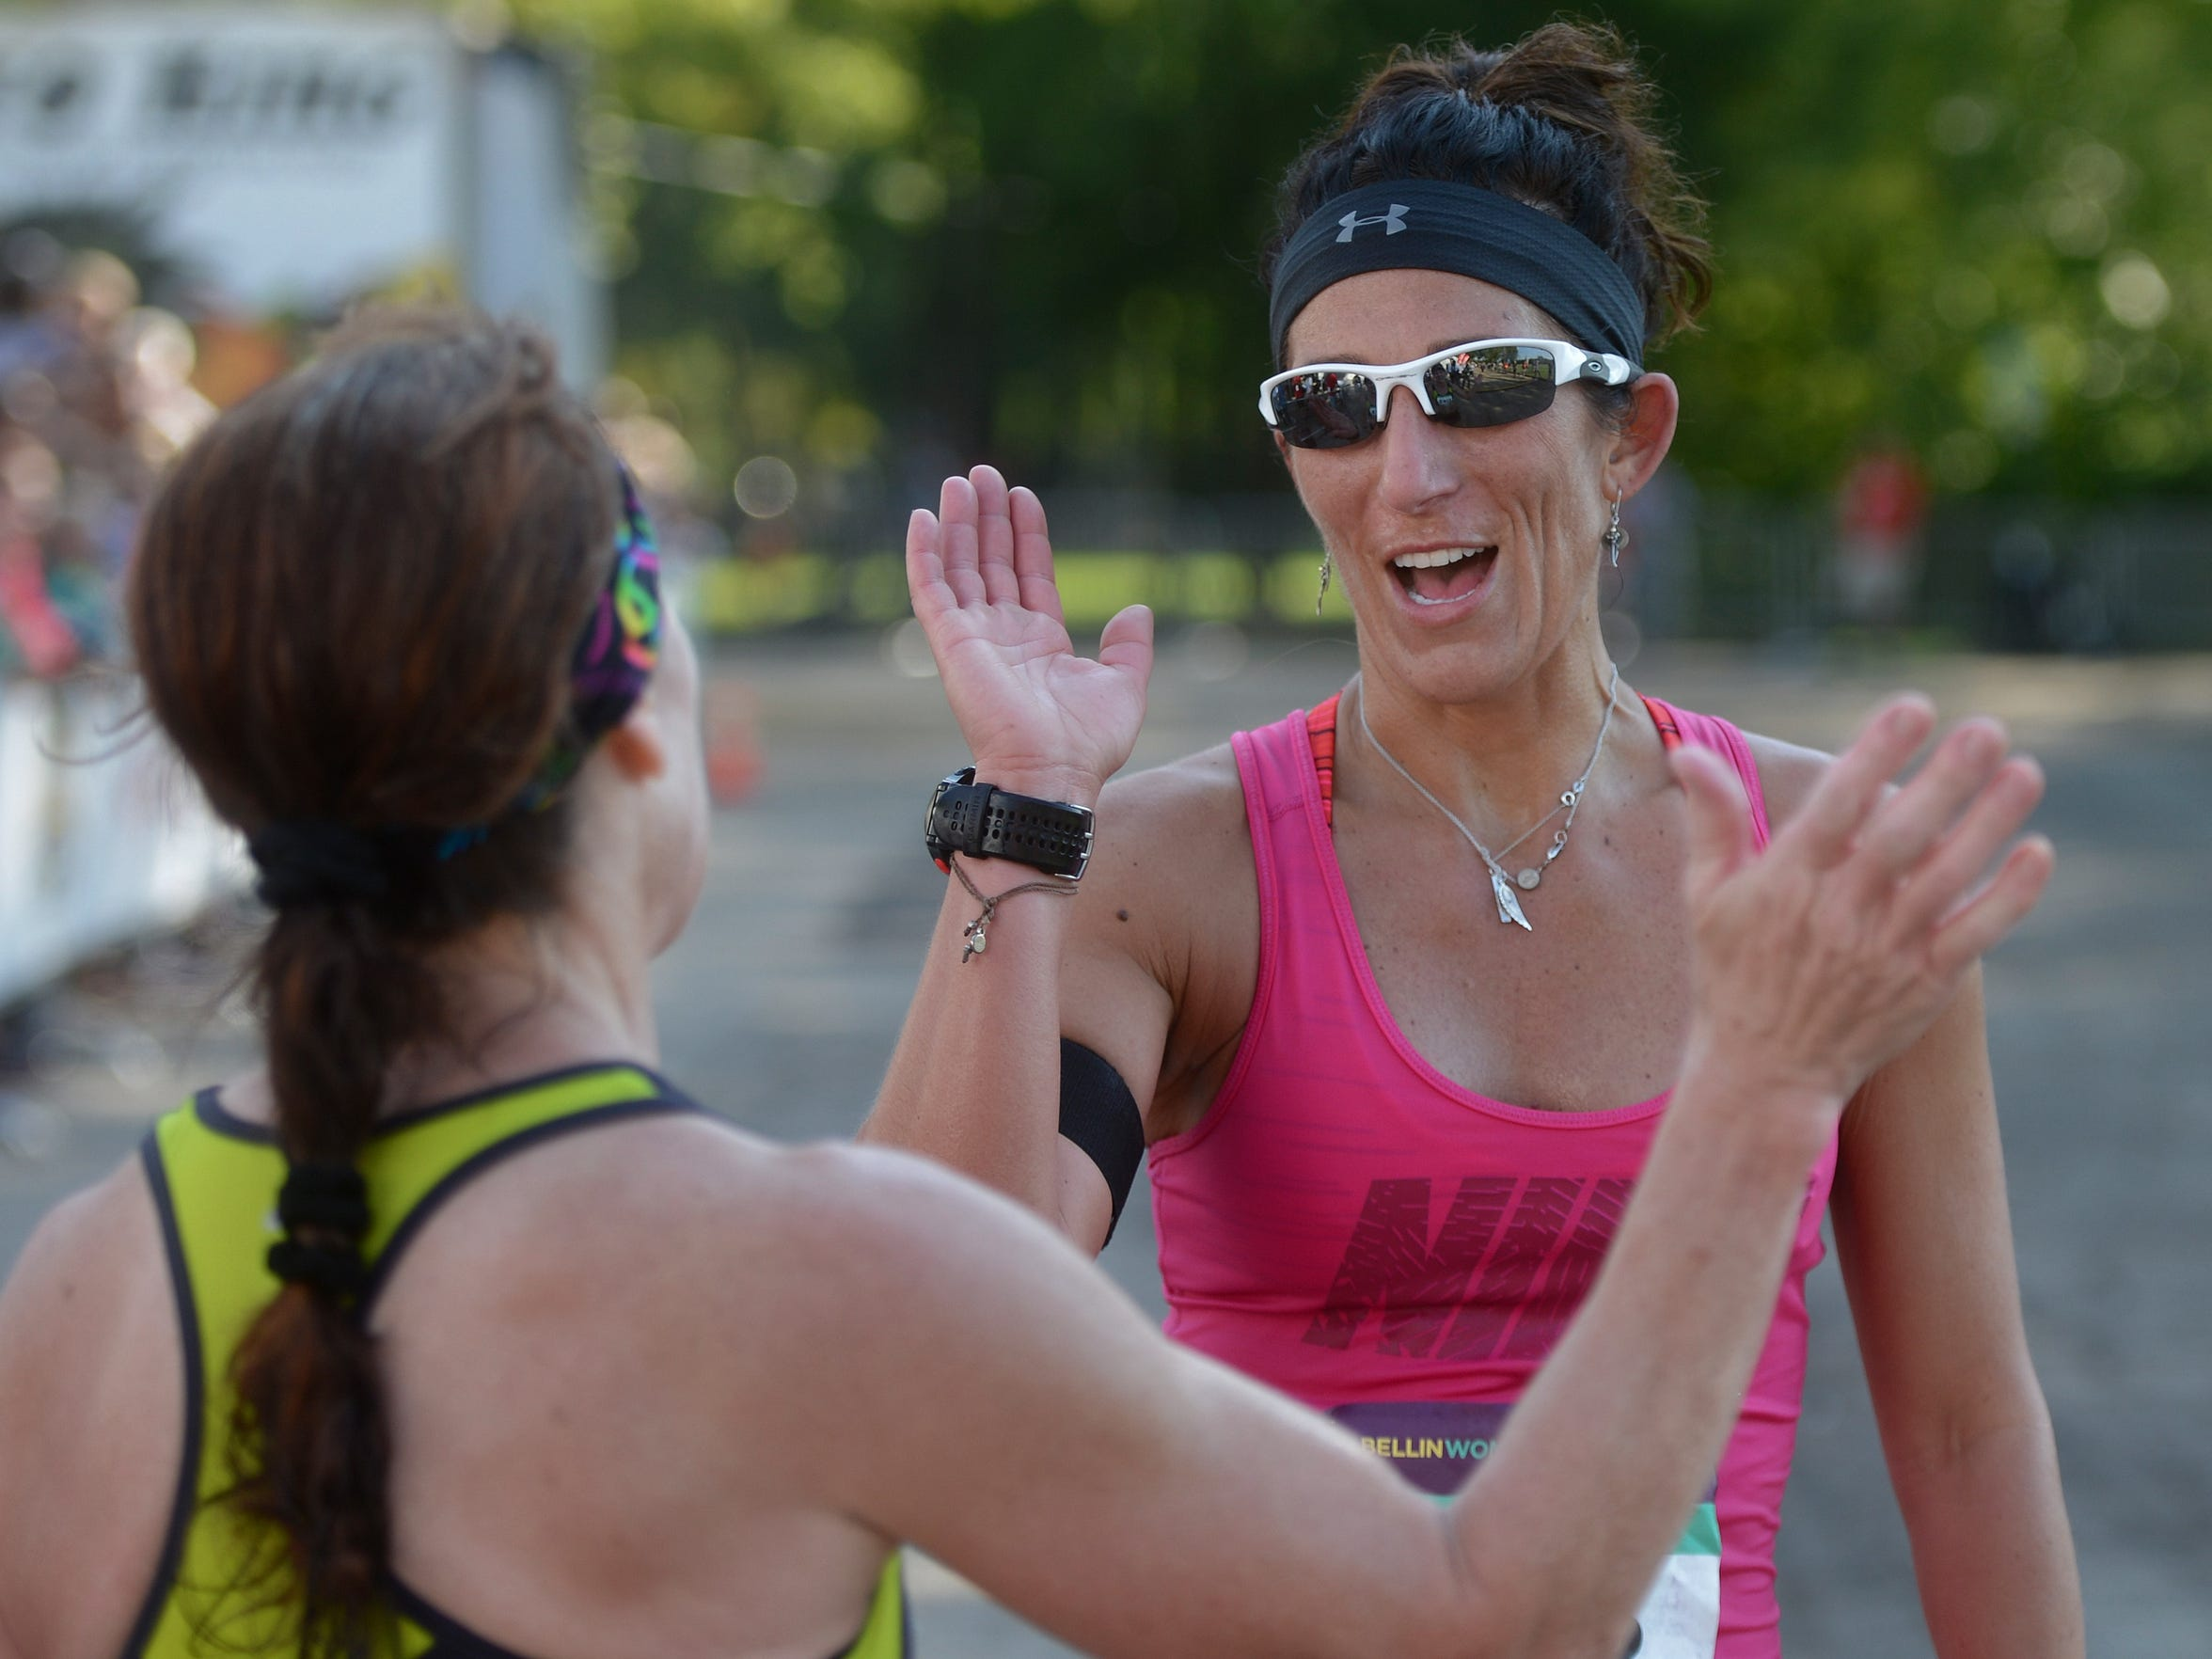 Toni Jaeckels was named the director of the Cellcom Green Bay Marathon in July.